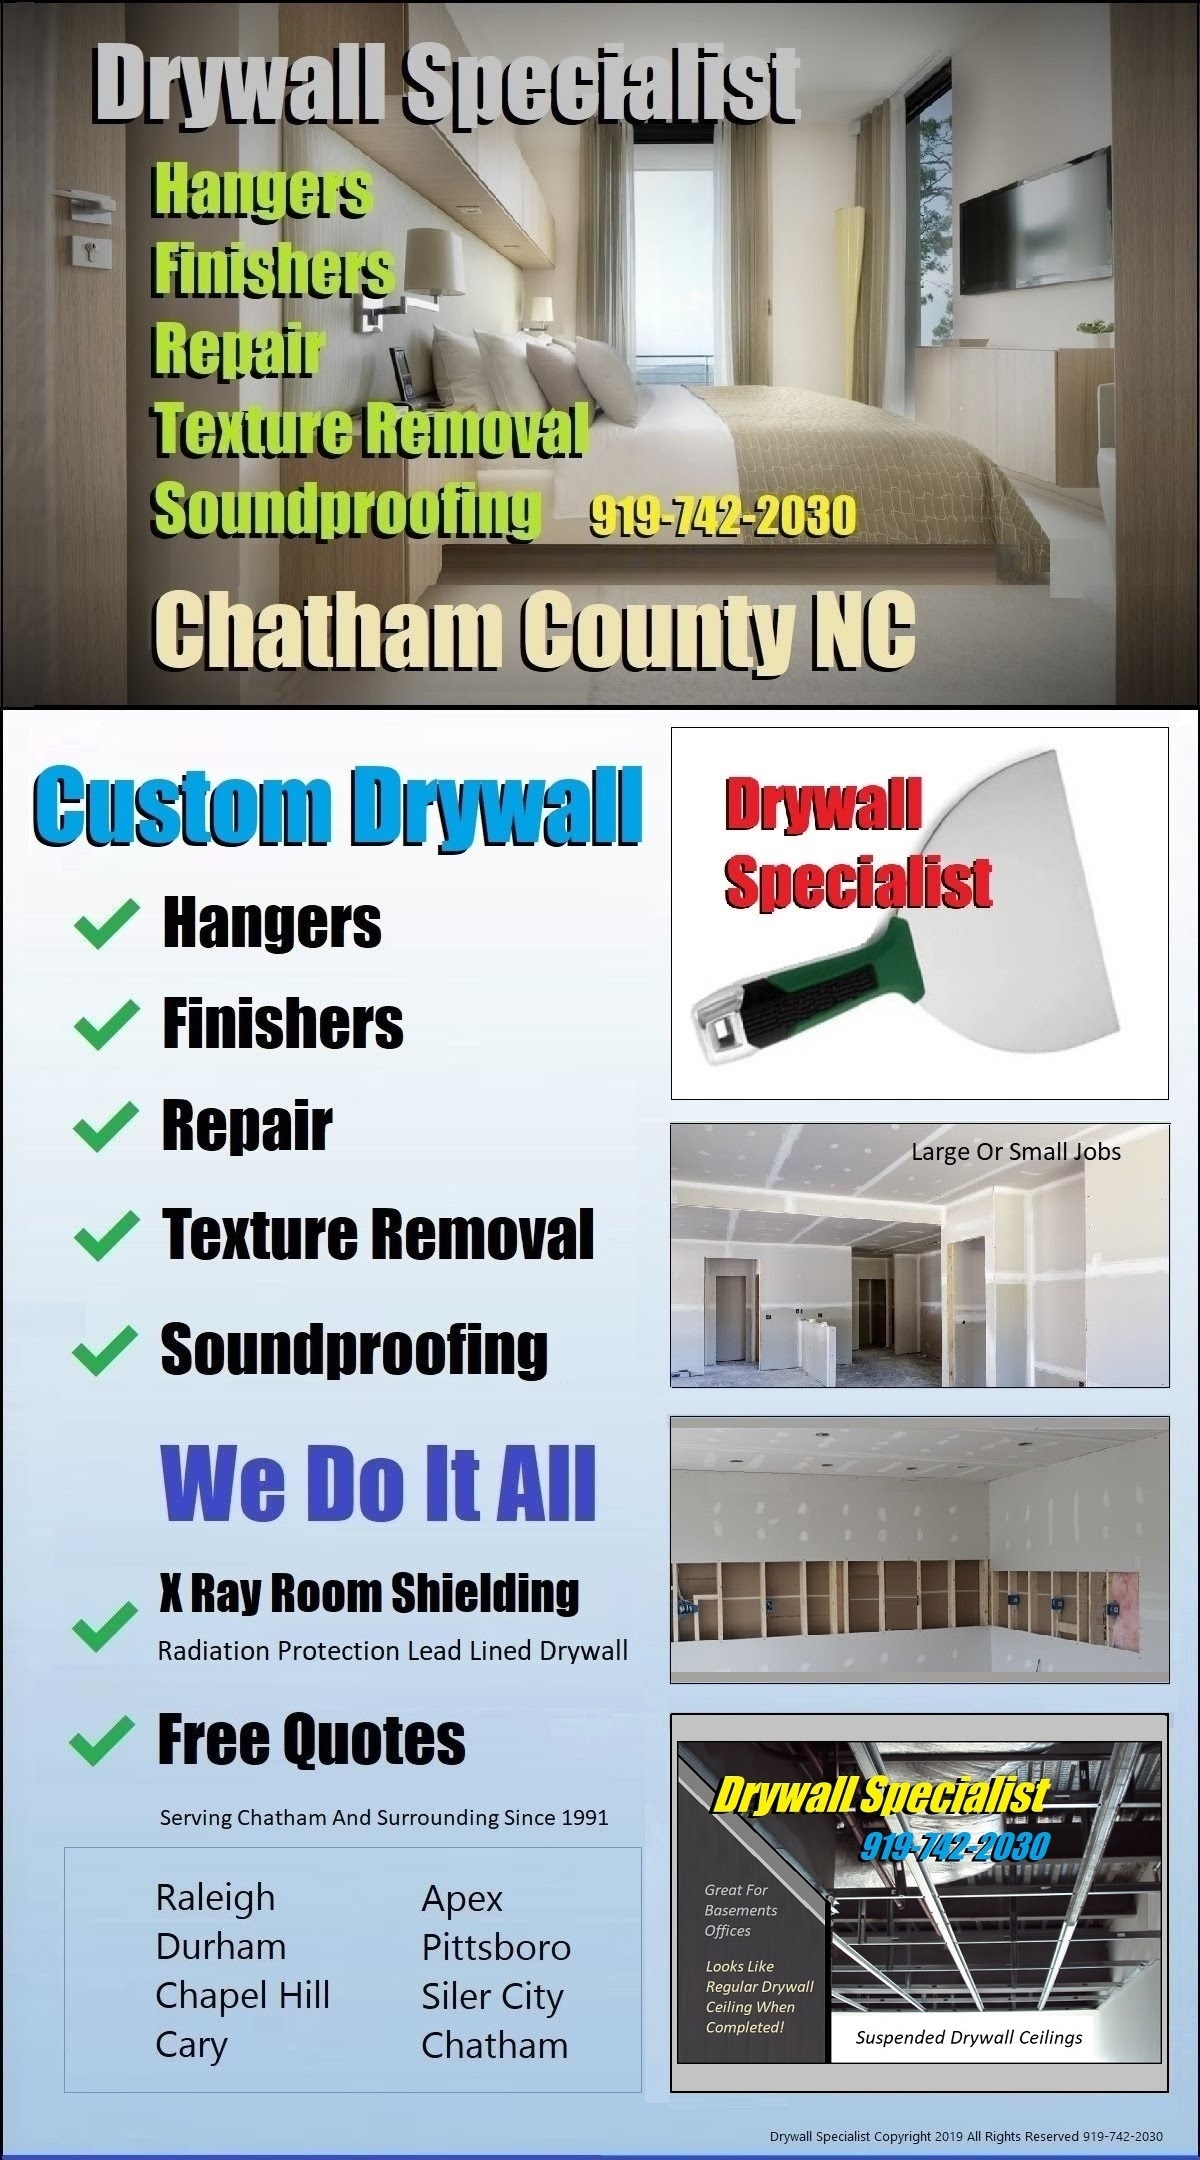 919-742-2030 Radiation Barriers X-Ray Room Shielding Charlotte NC